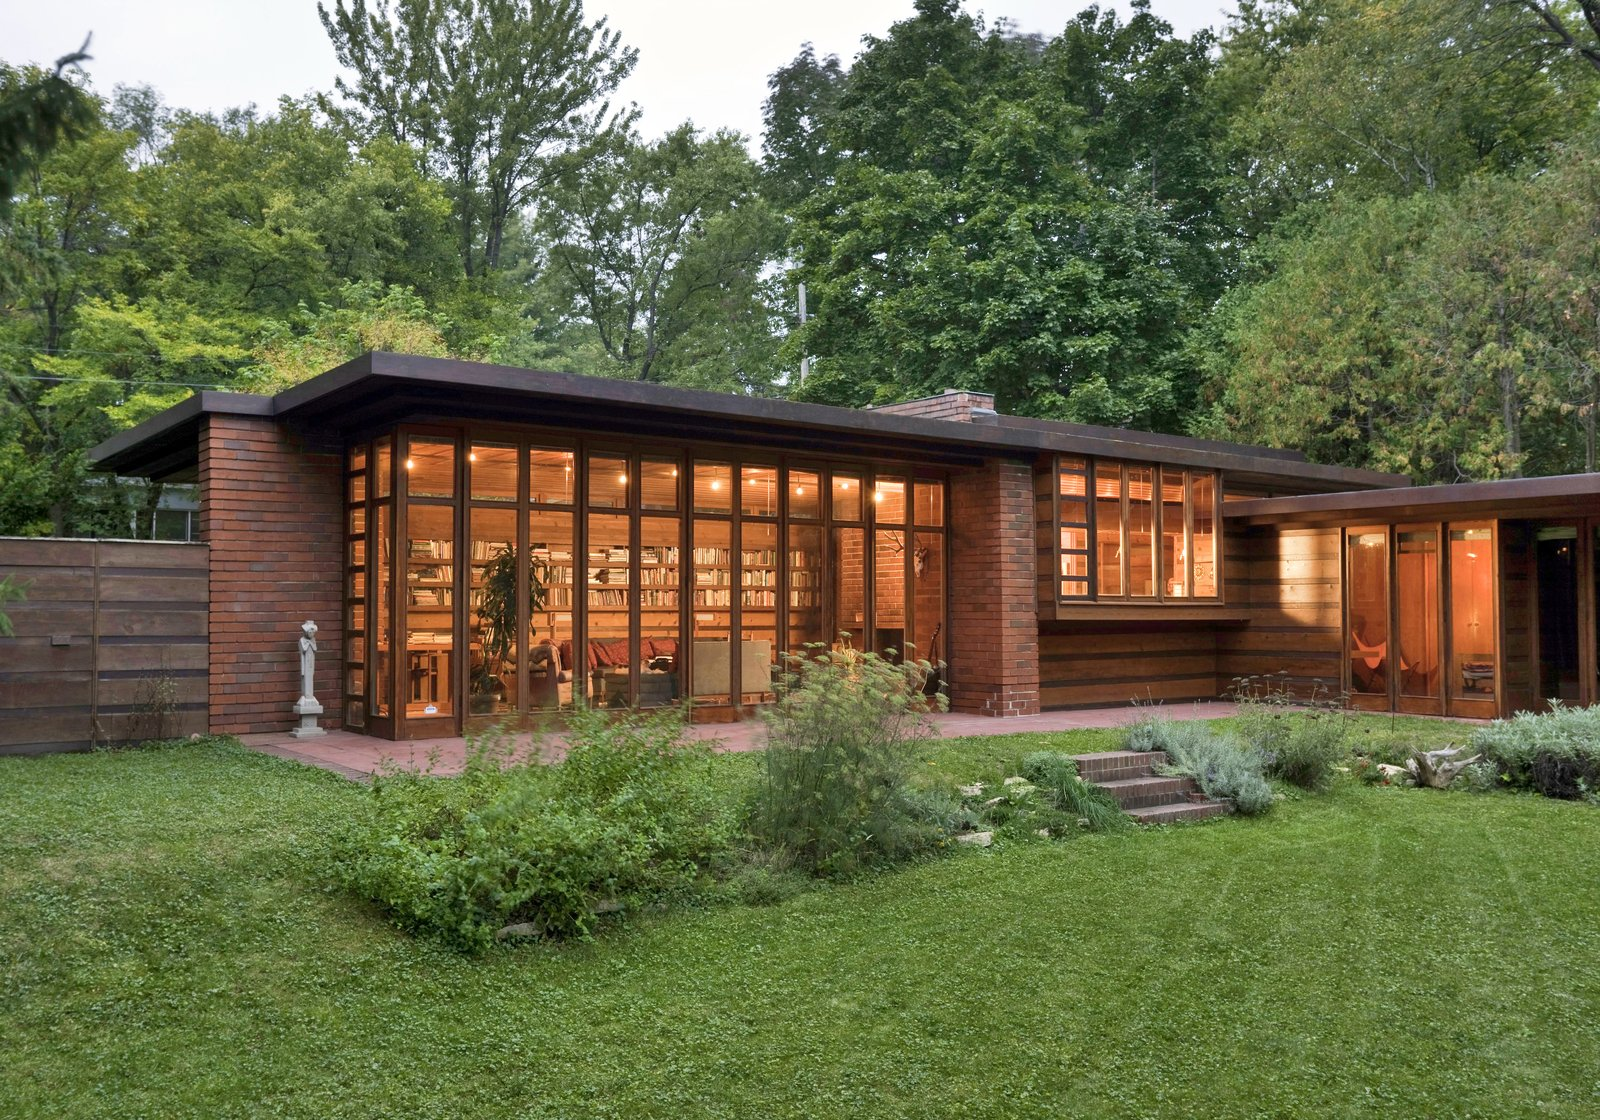 What You Need To Know About Frank Lloyd Wright 39 S Usonian